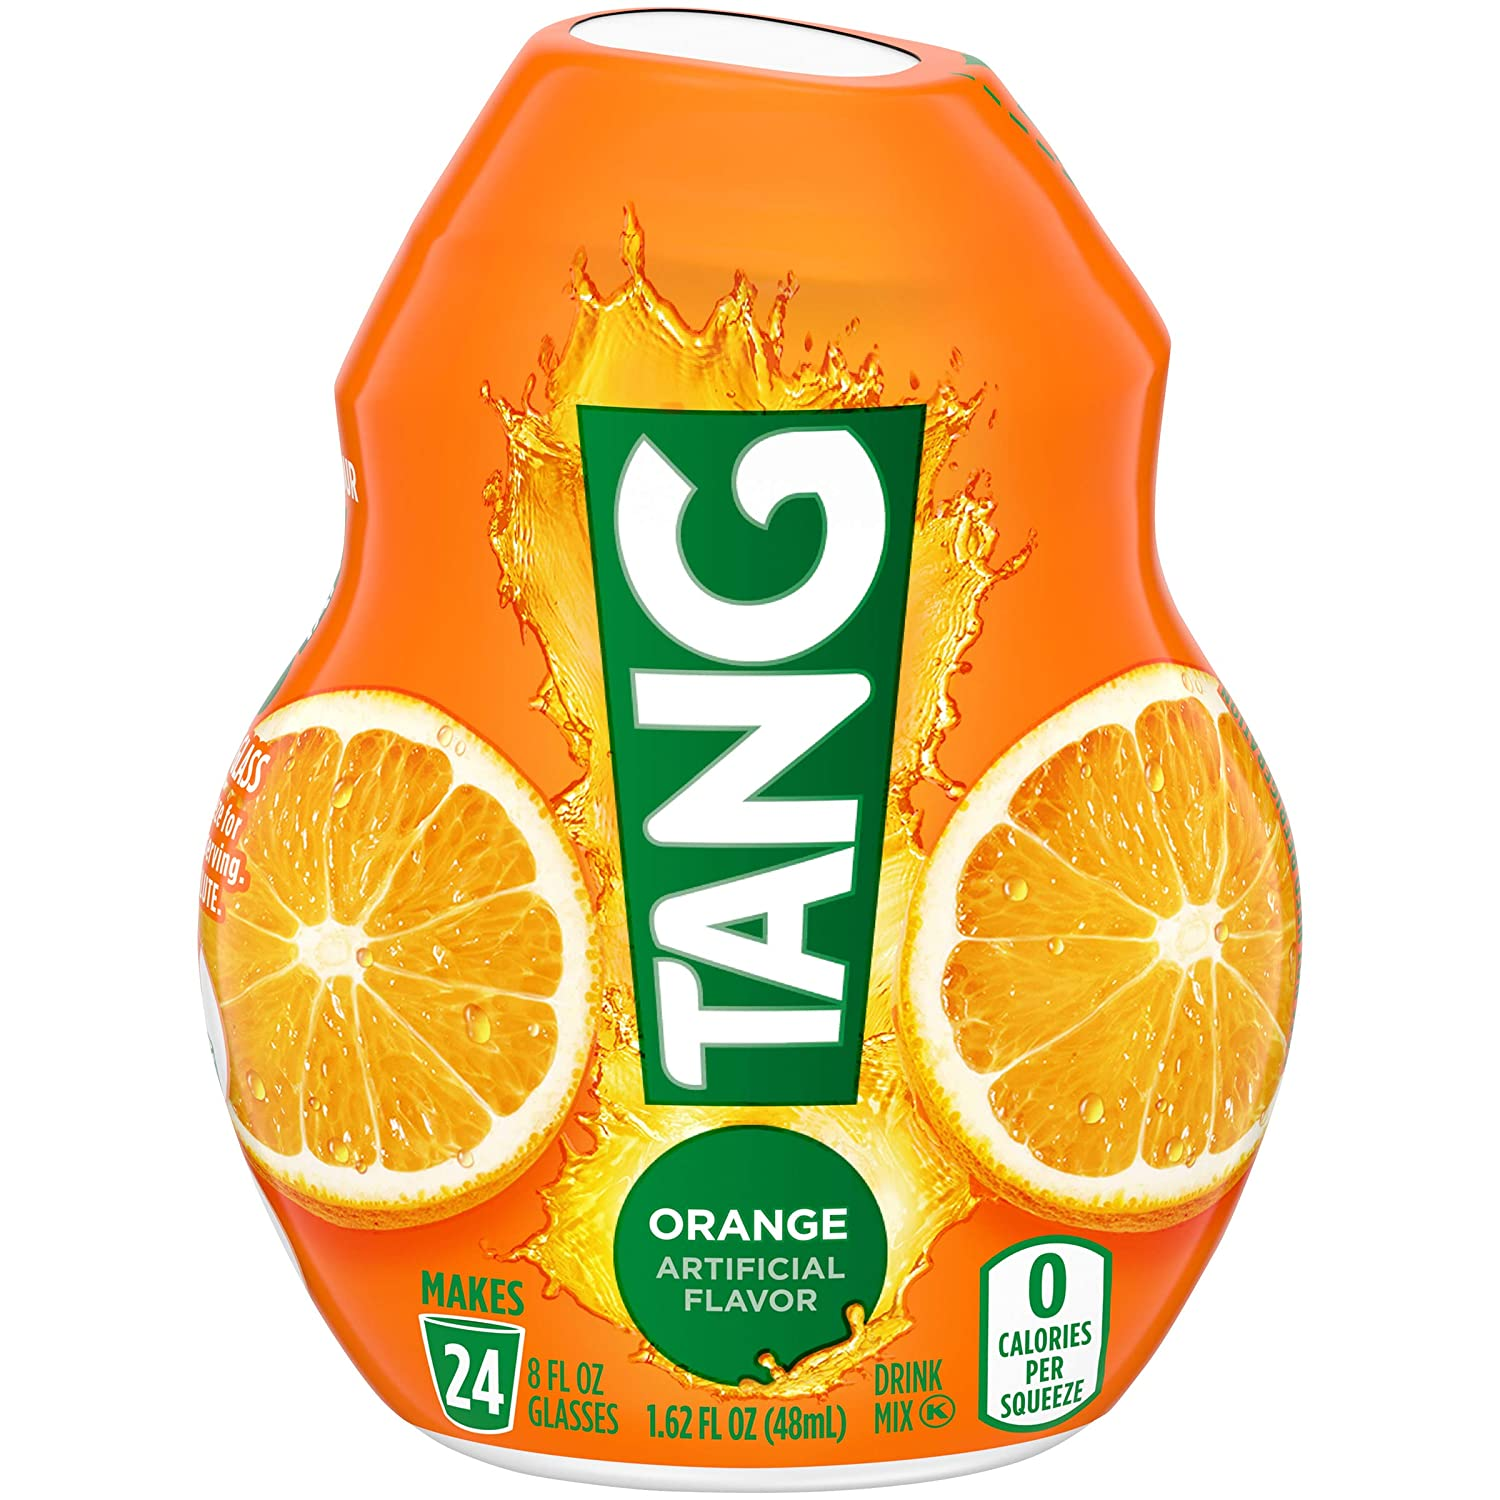 Tang Orange Liquid Concentrate Drink Mix with Vitamin C (1.62 fl oz Bottle)